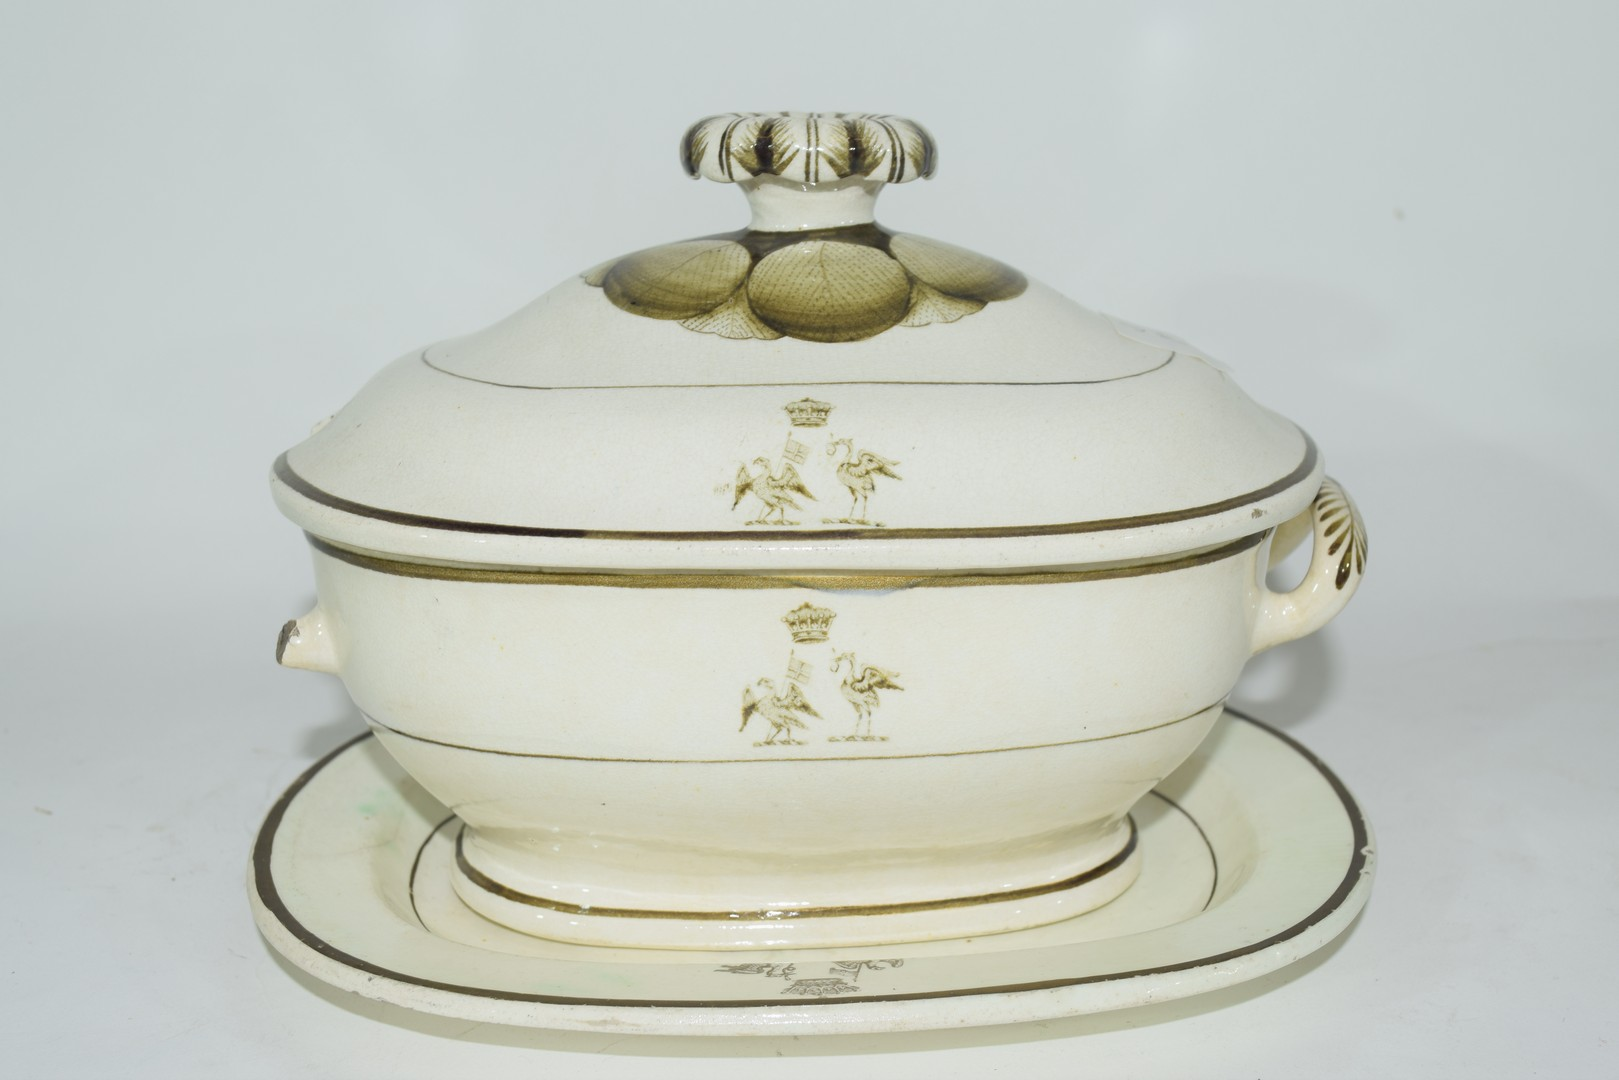 Late 18th century Rogers pearlware small tureen